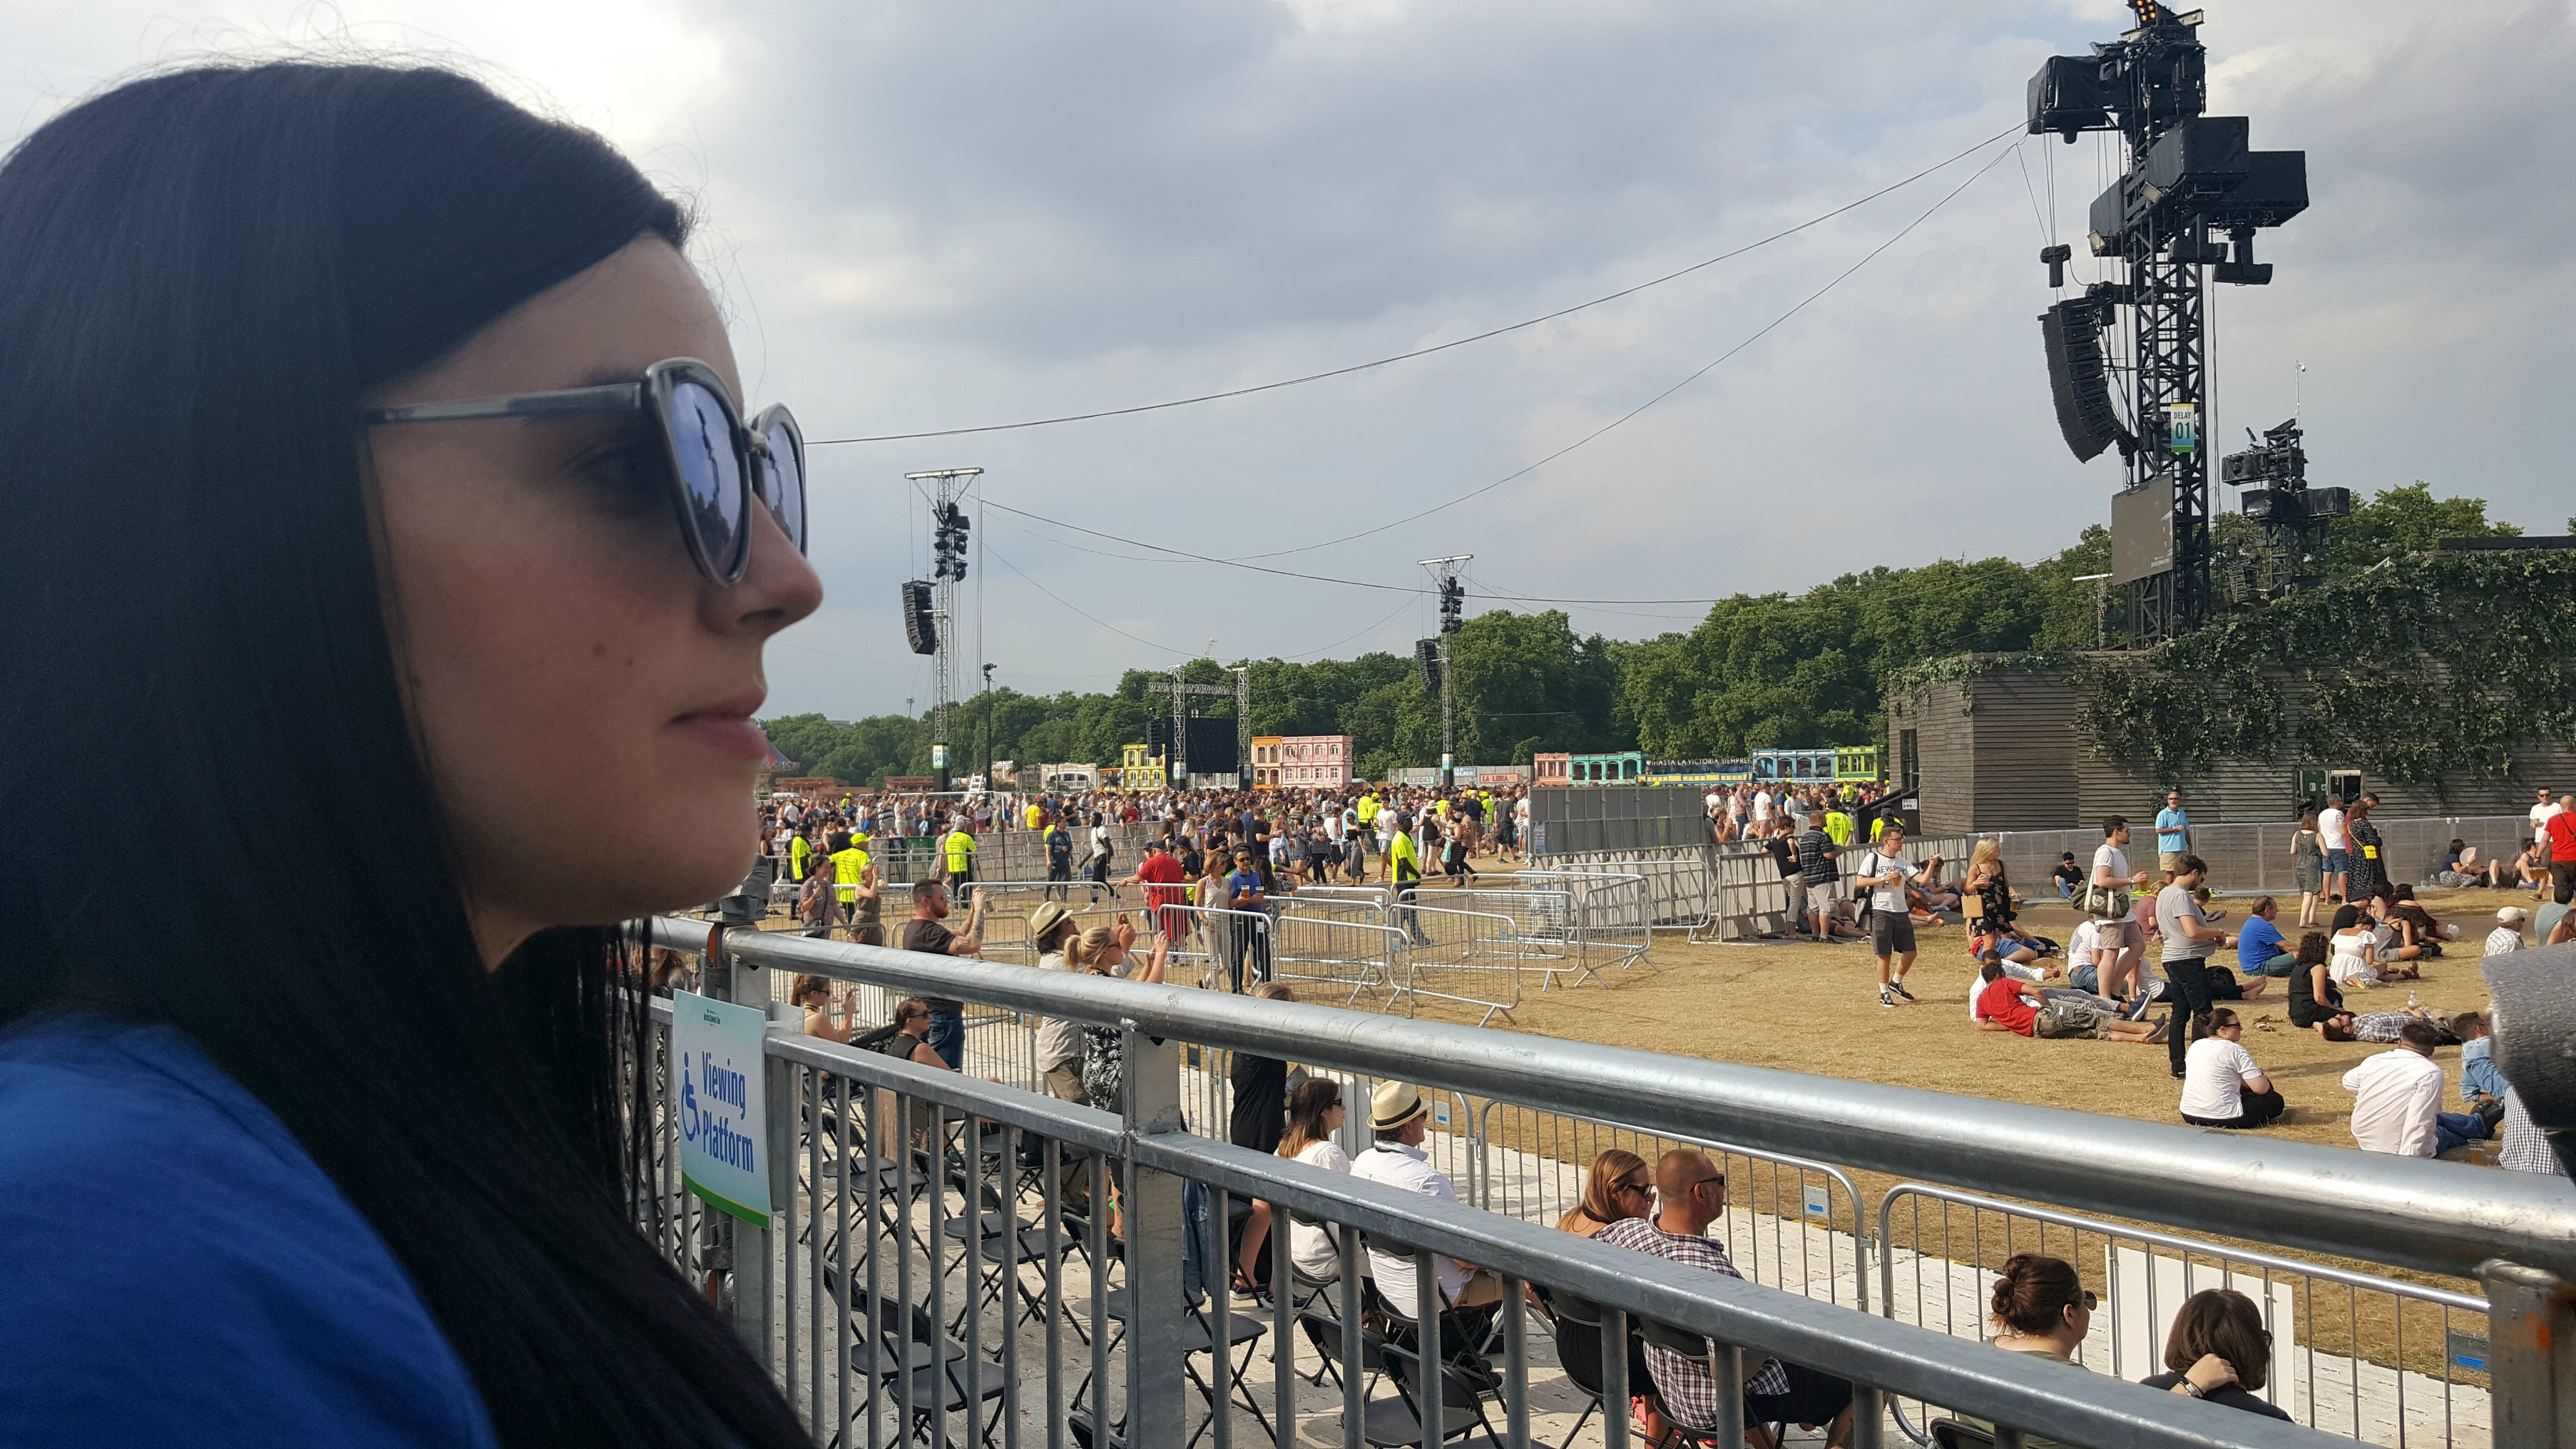 BST Hyde Park 2017 viewing platform The Great Oak Stage